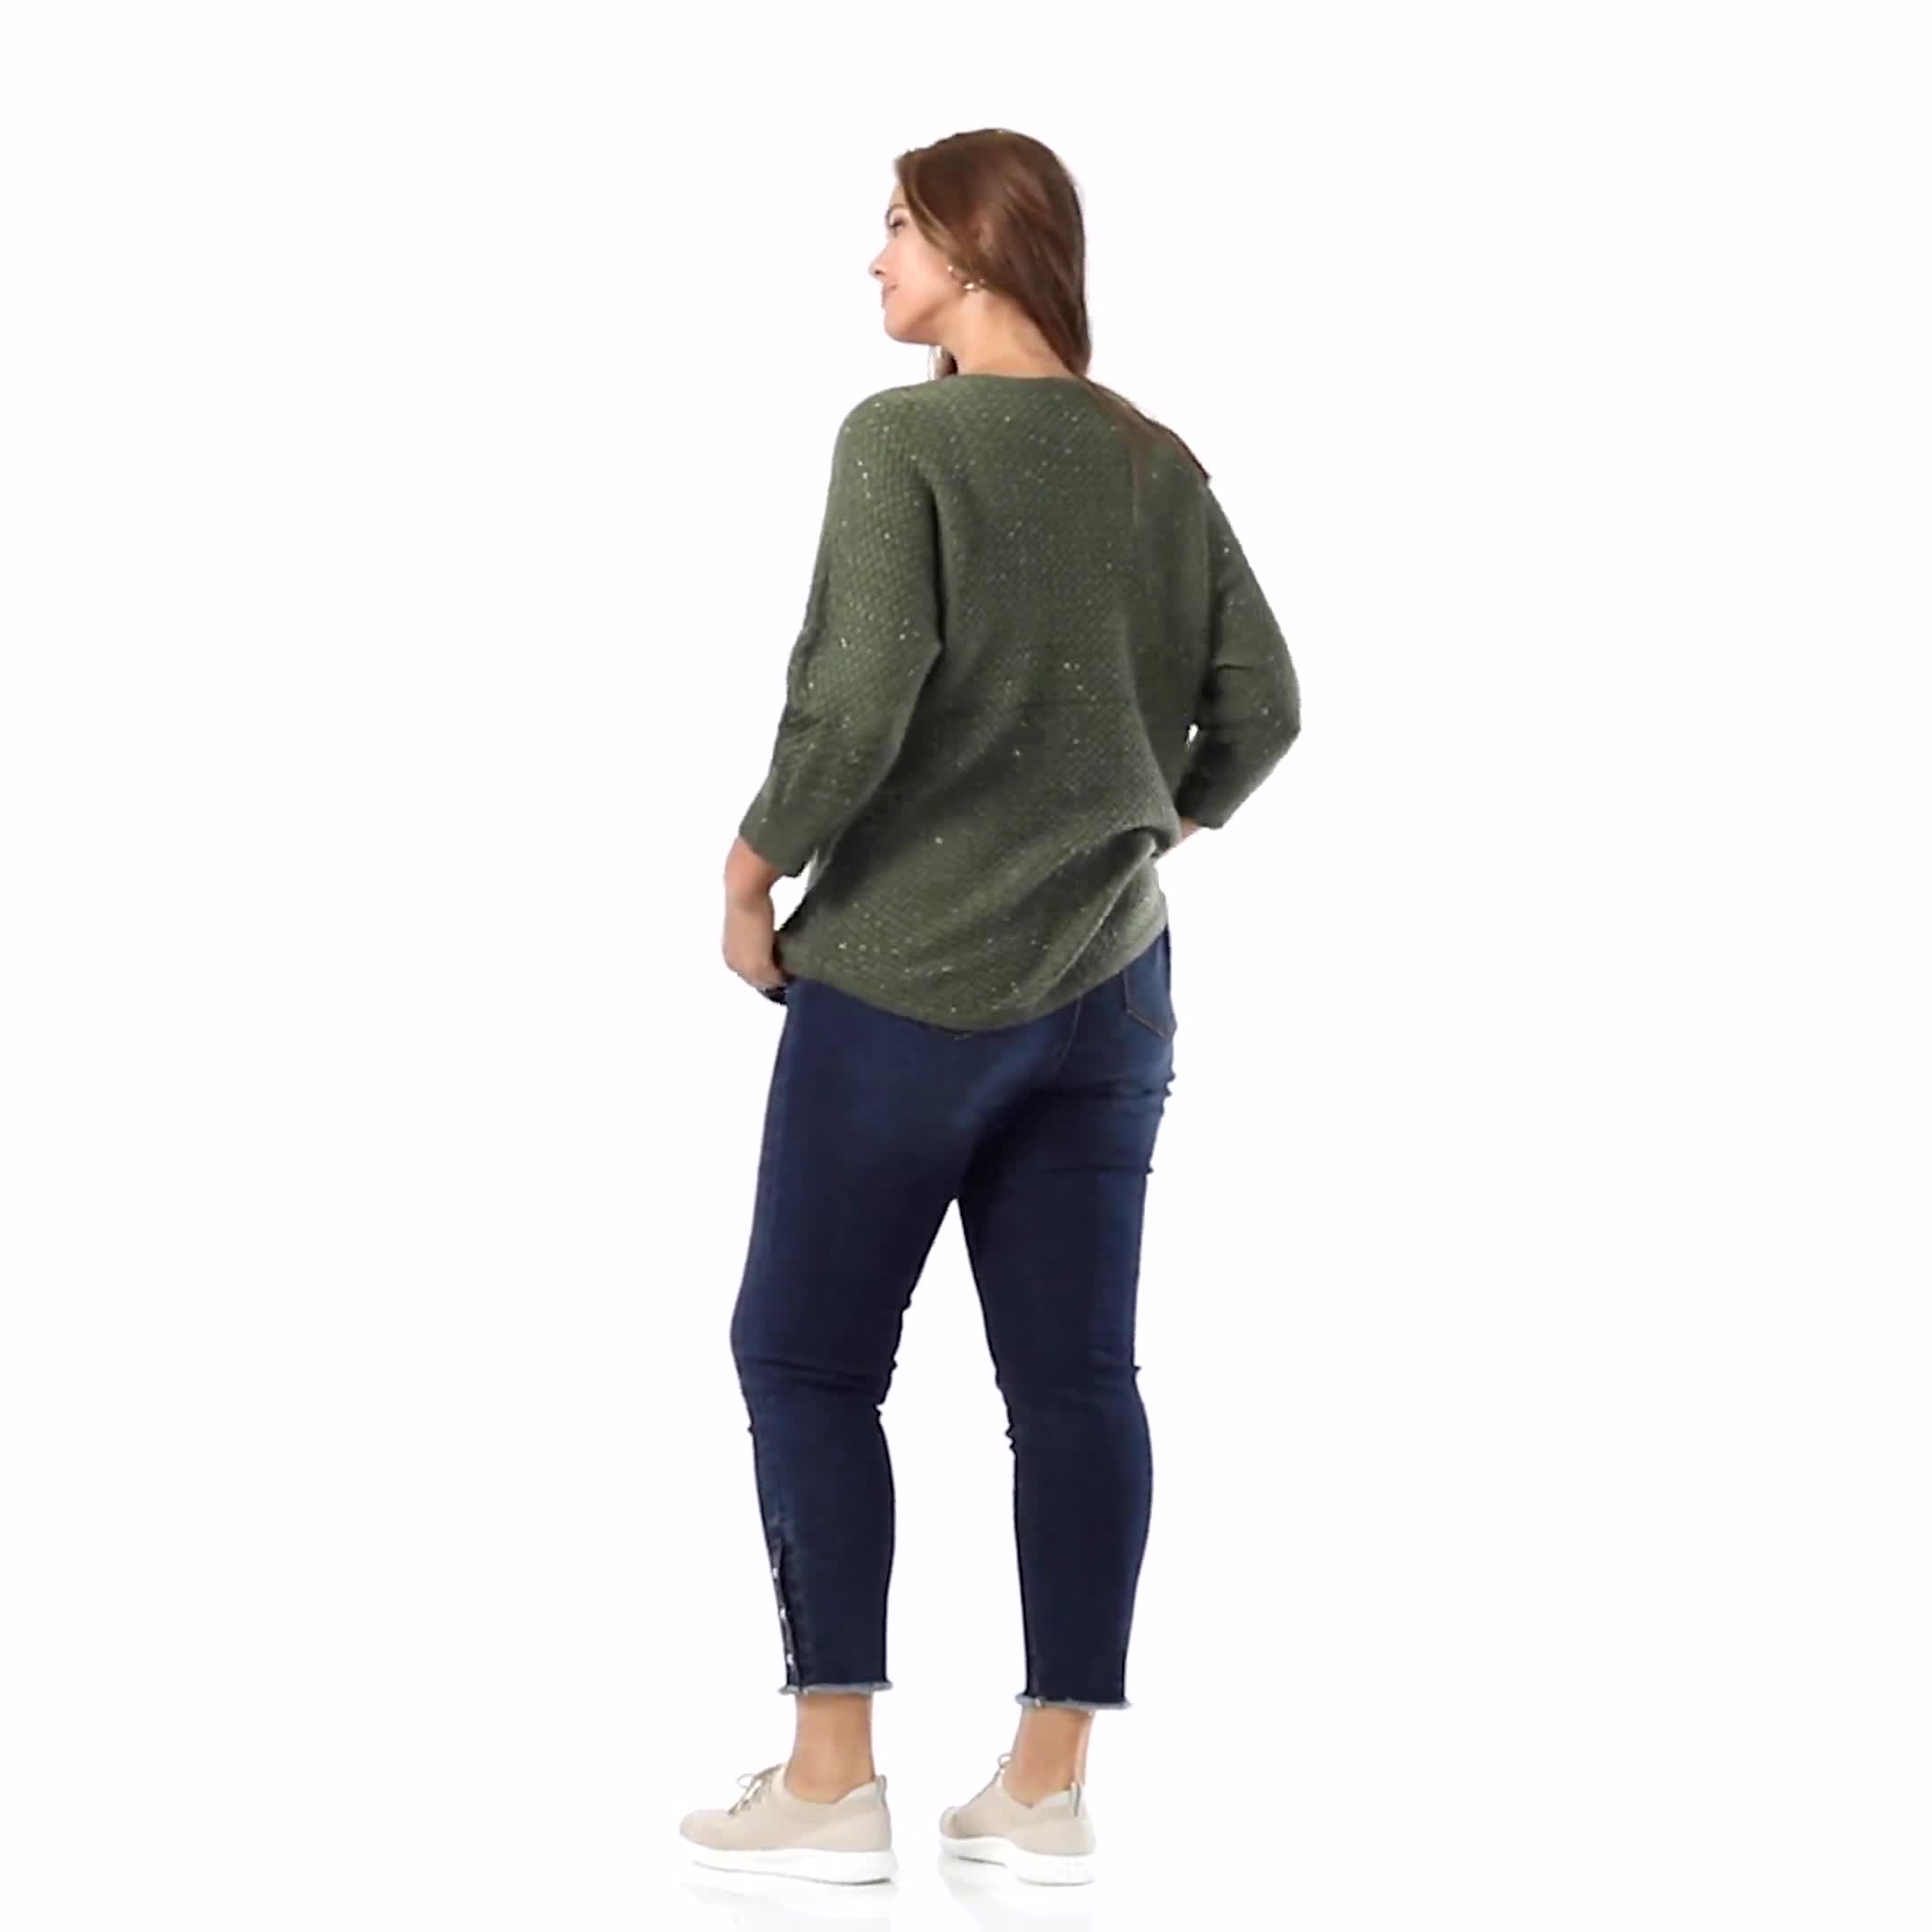 Westport Zig Zag Stitch Curved Hem Sweater - Plus - Video